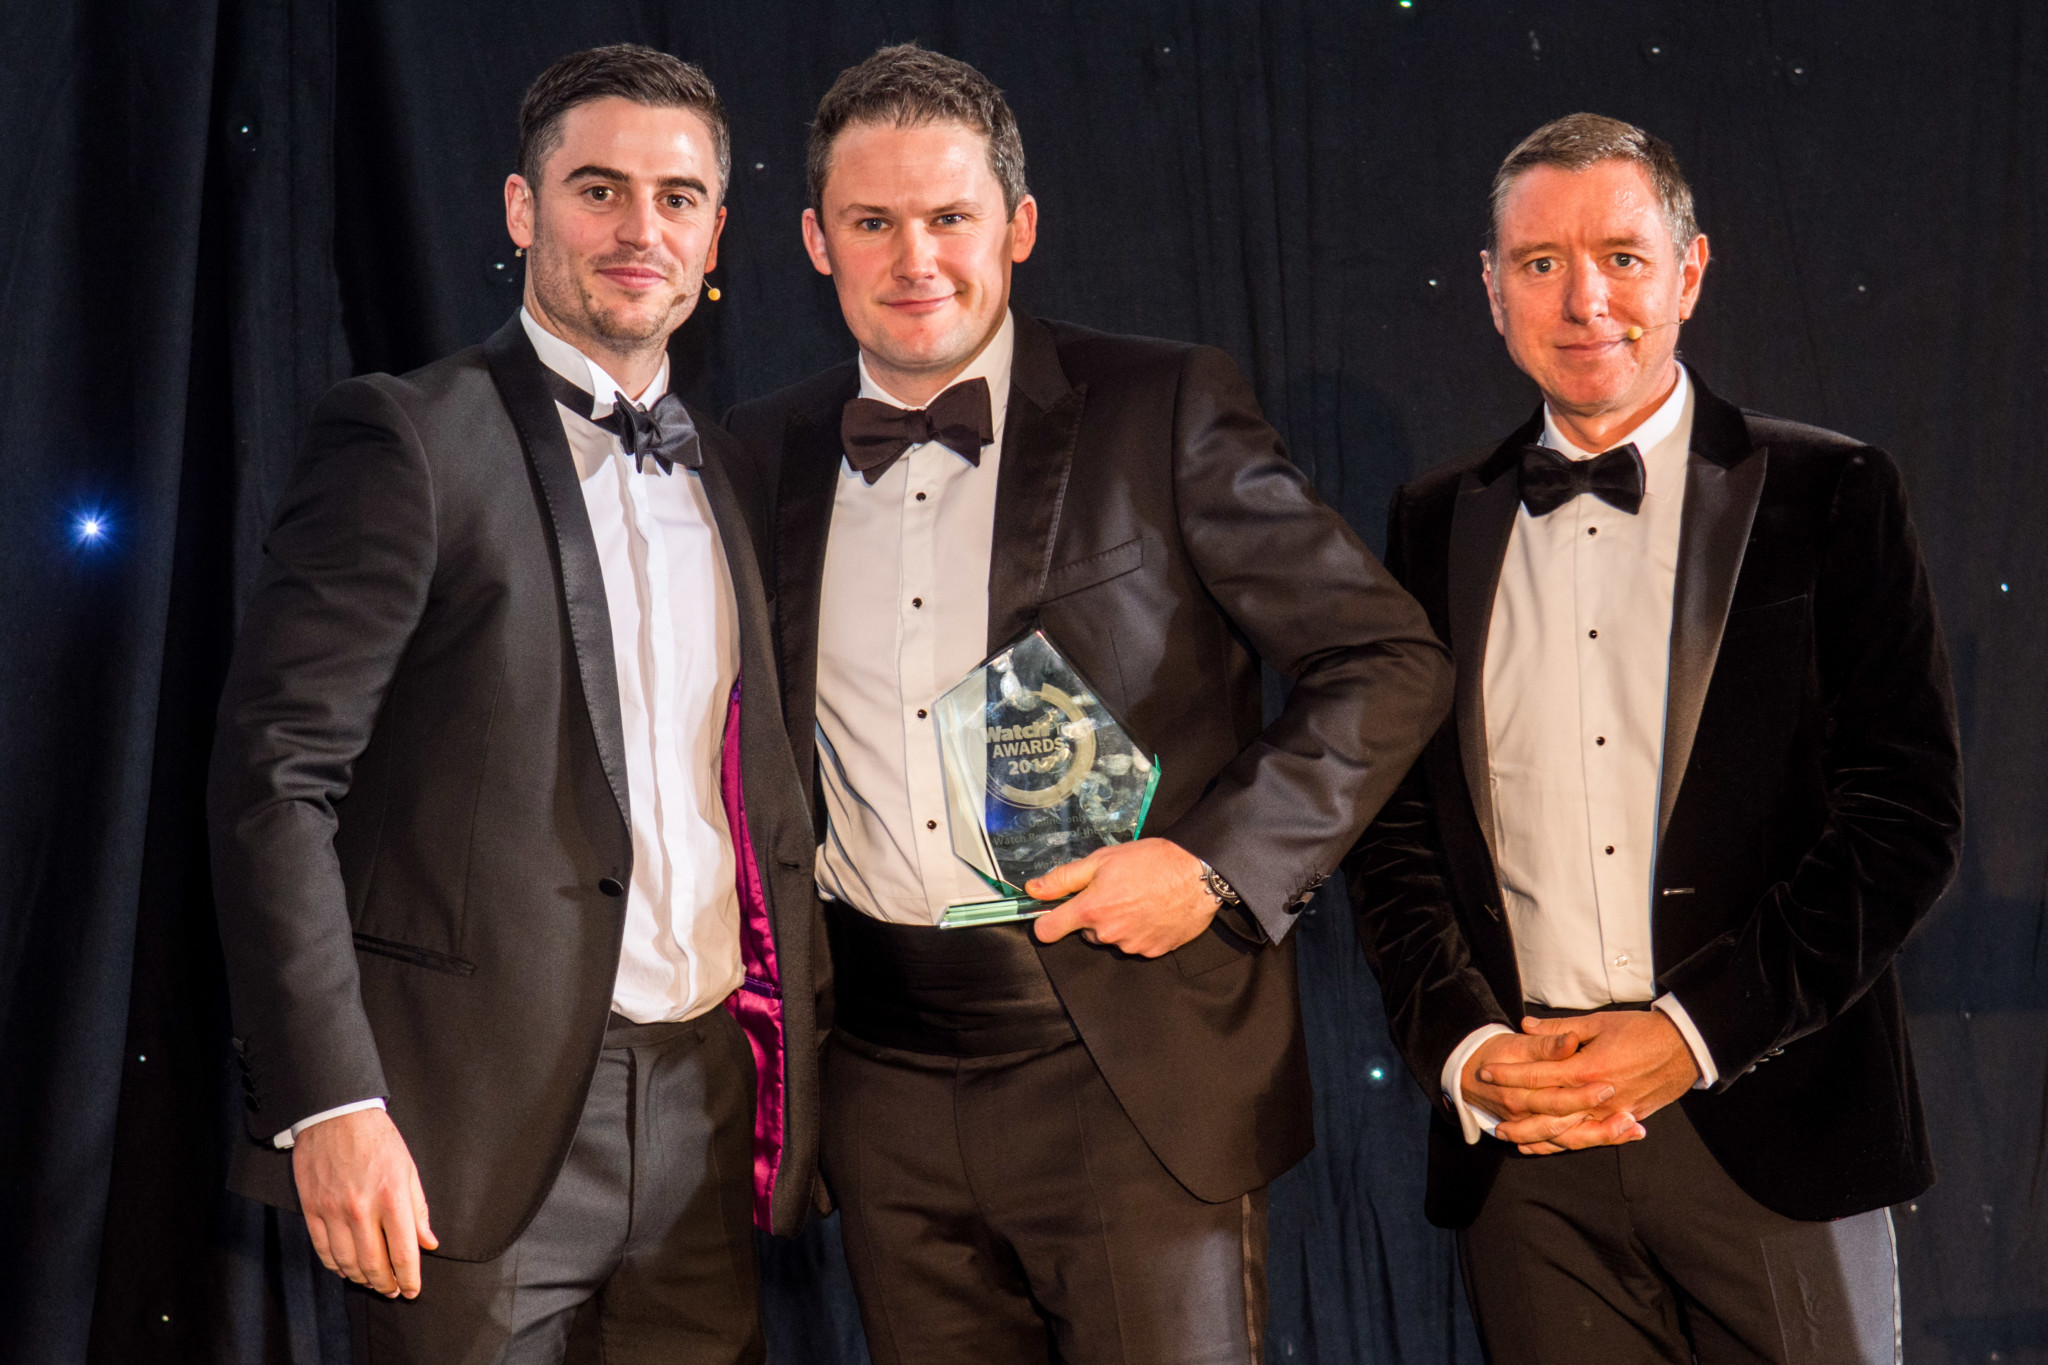 Alex Fisher, CEO of Watchshop, collects the award from WatchPro's Daniel Malins and Rob Corder.